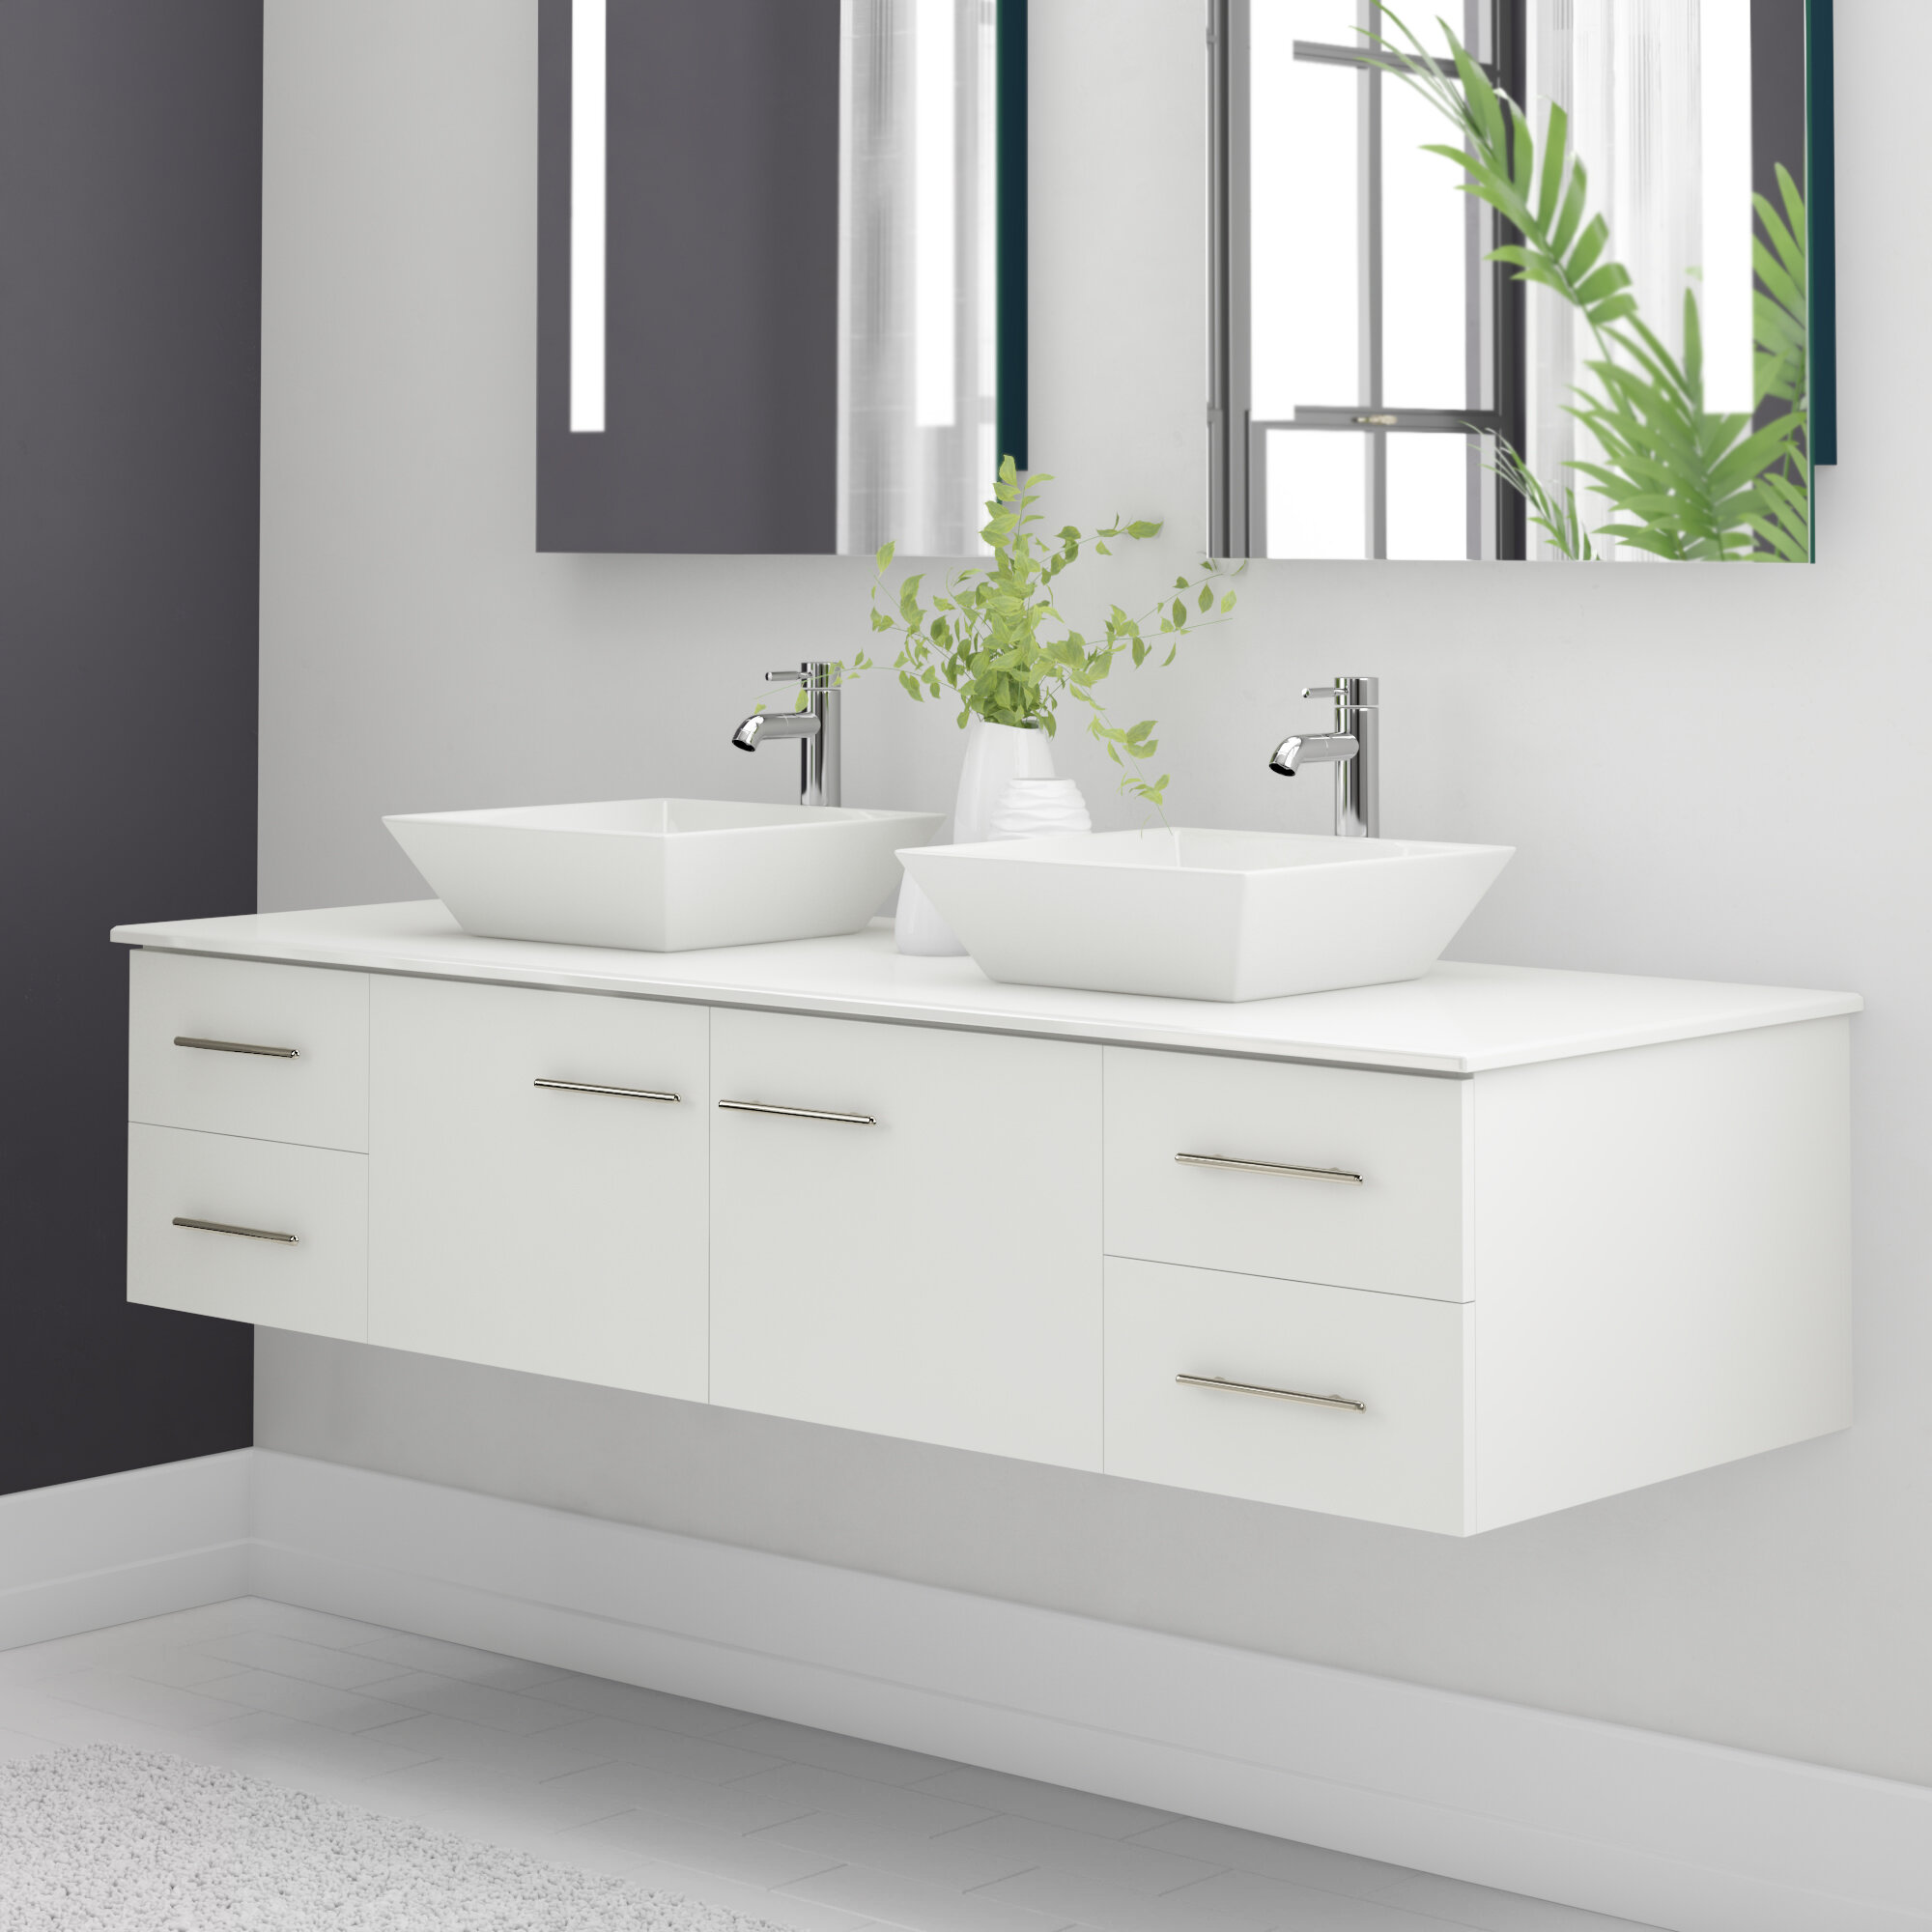 Orren Ellis Vinit 60 Wall Mounted Double Bathroom Vanity Set Reviews Wayfair